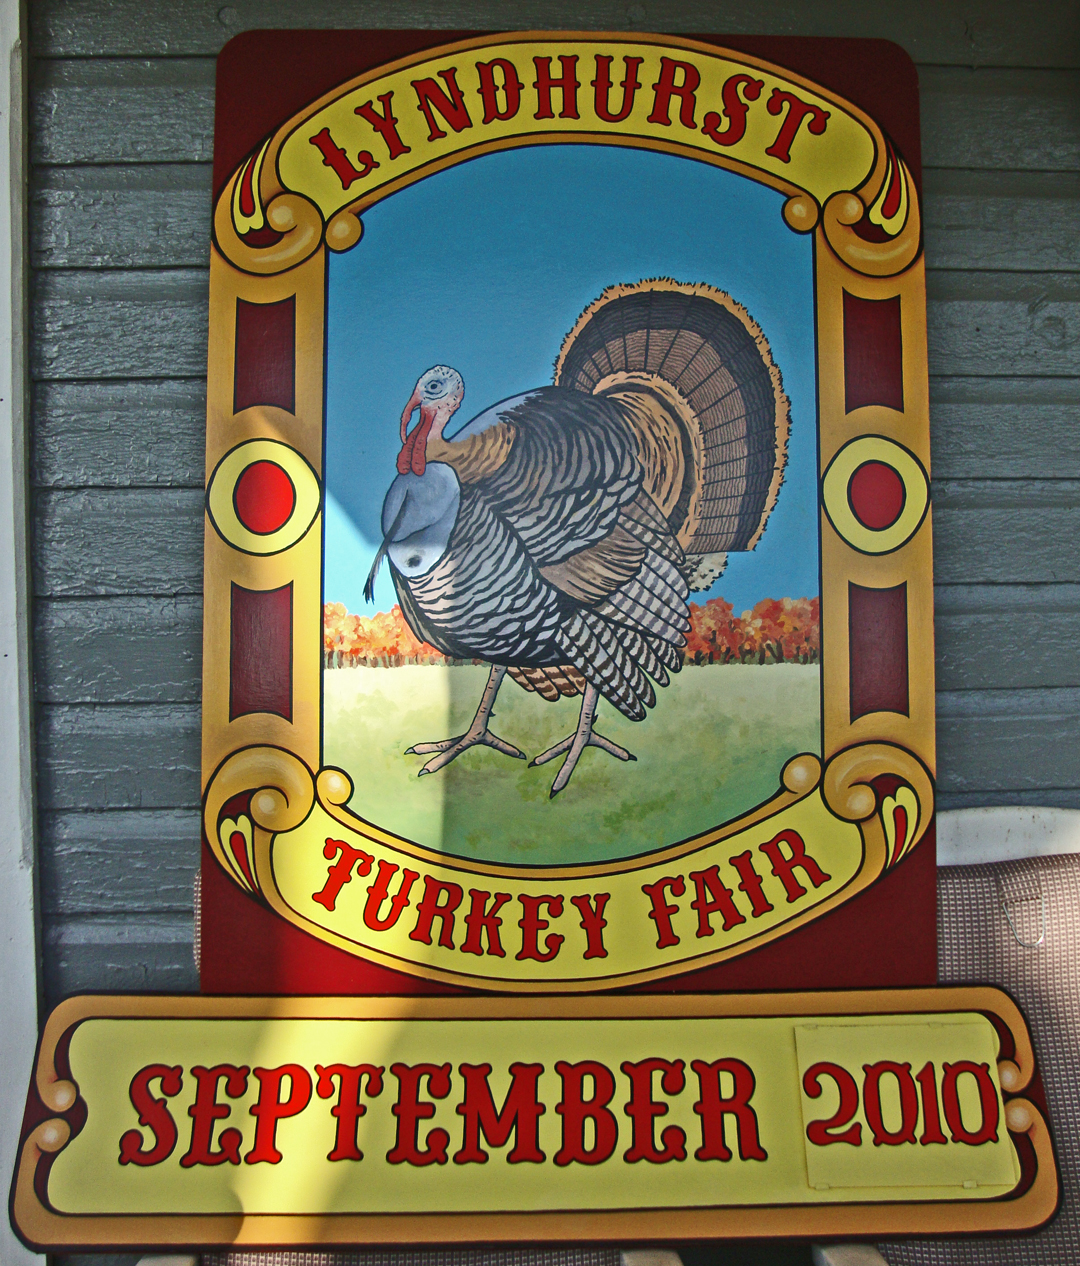 Lyndhurst Turkey Fair Sign